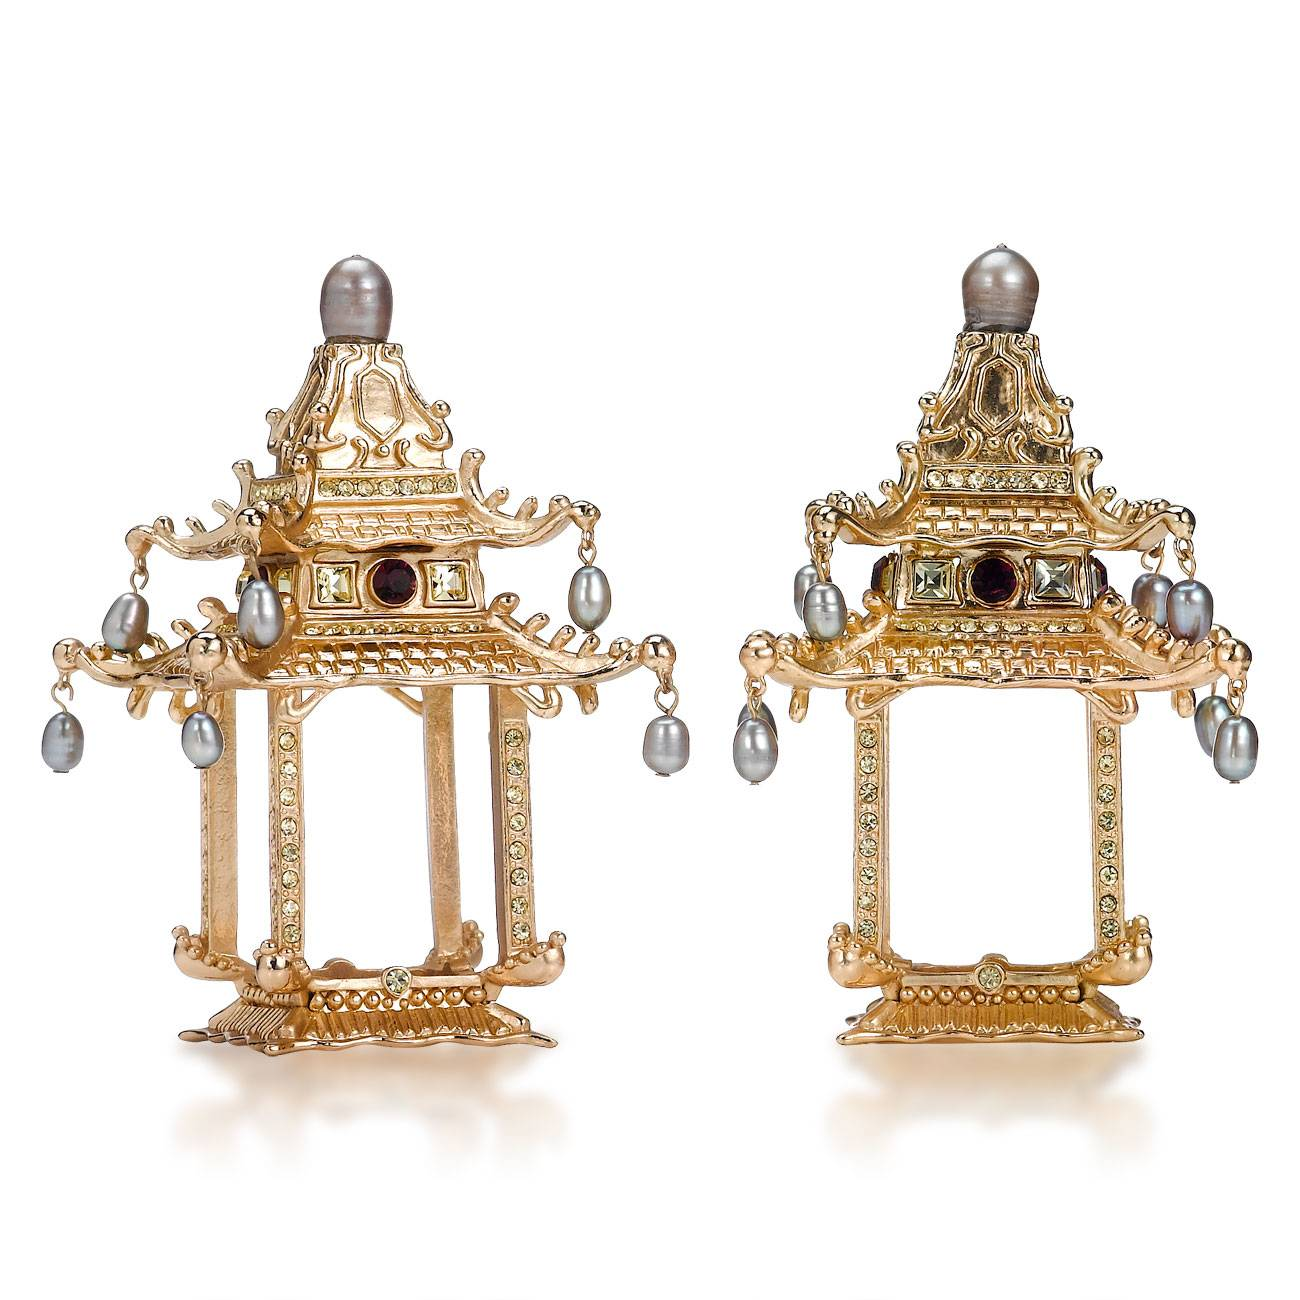 L'Objet Spice Jewels Collection